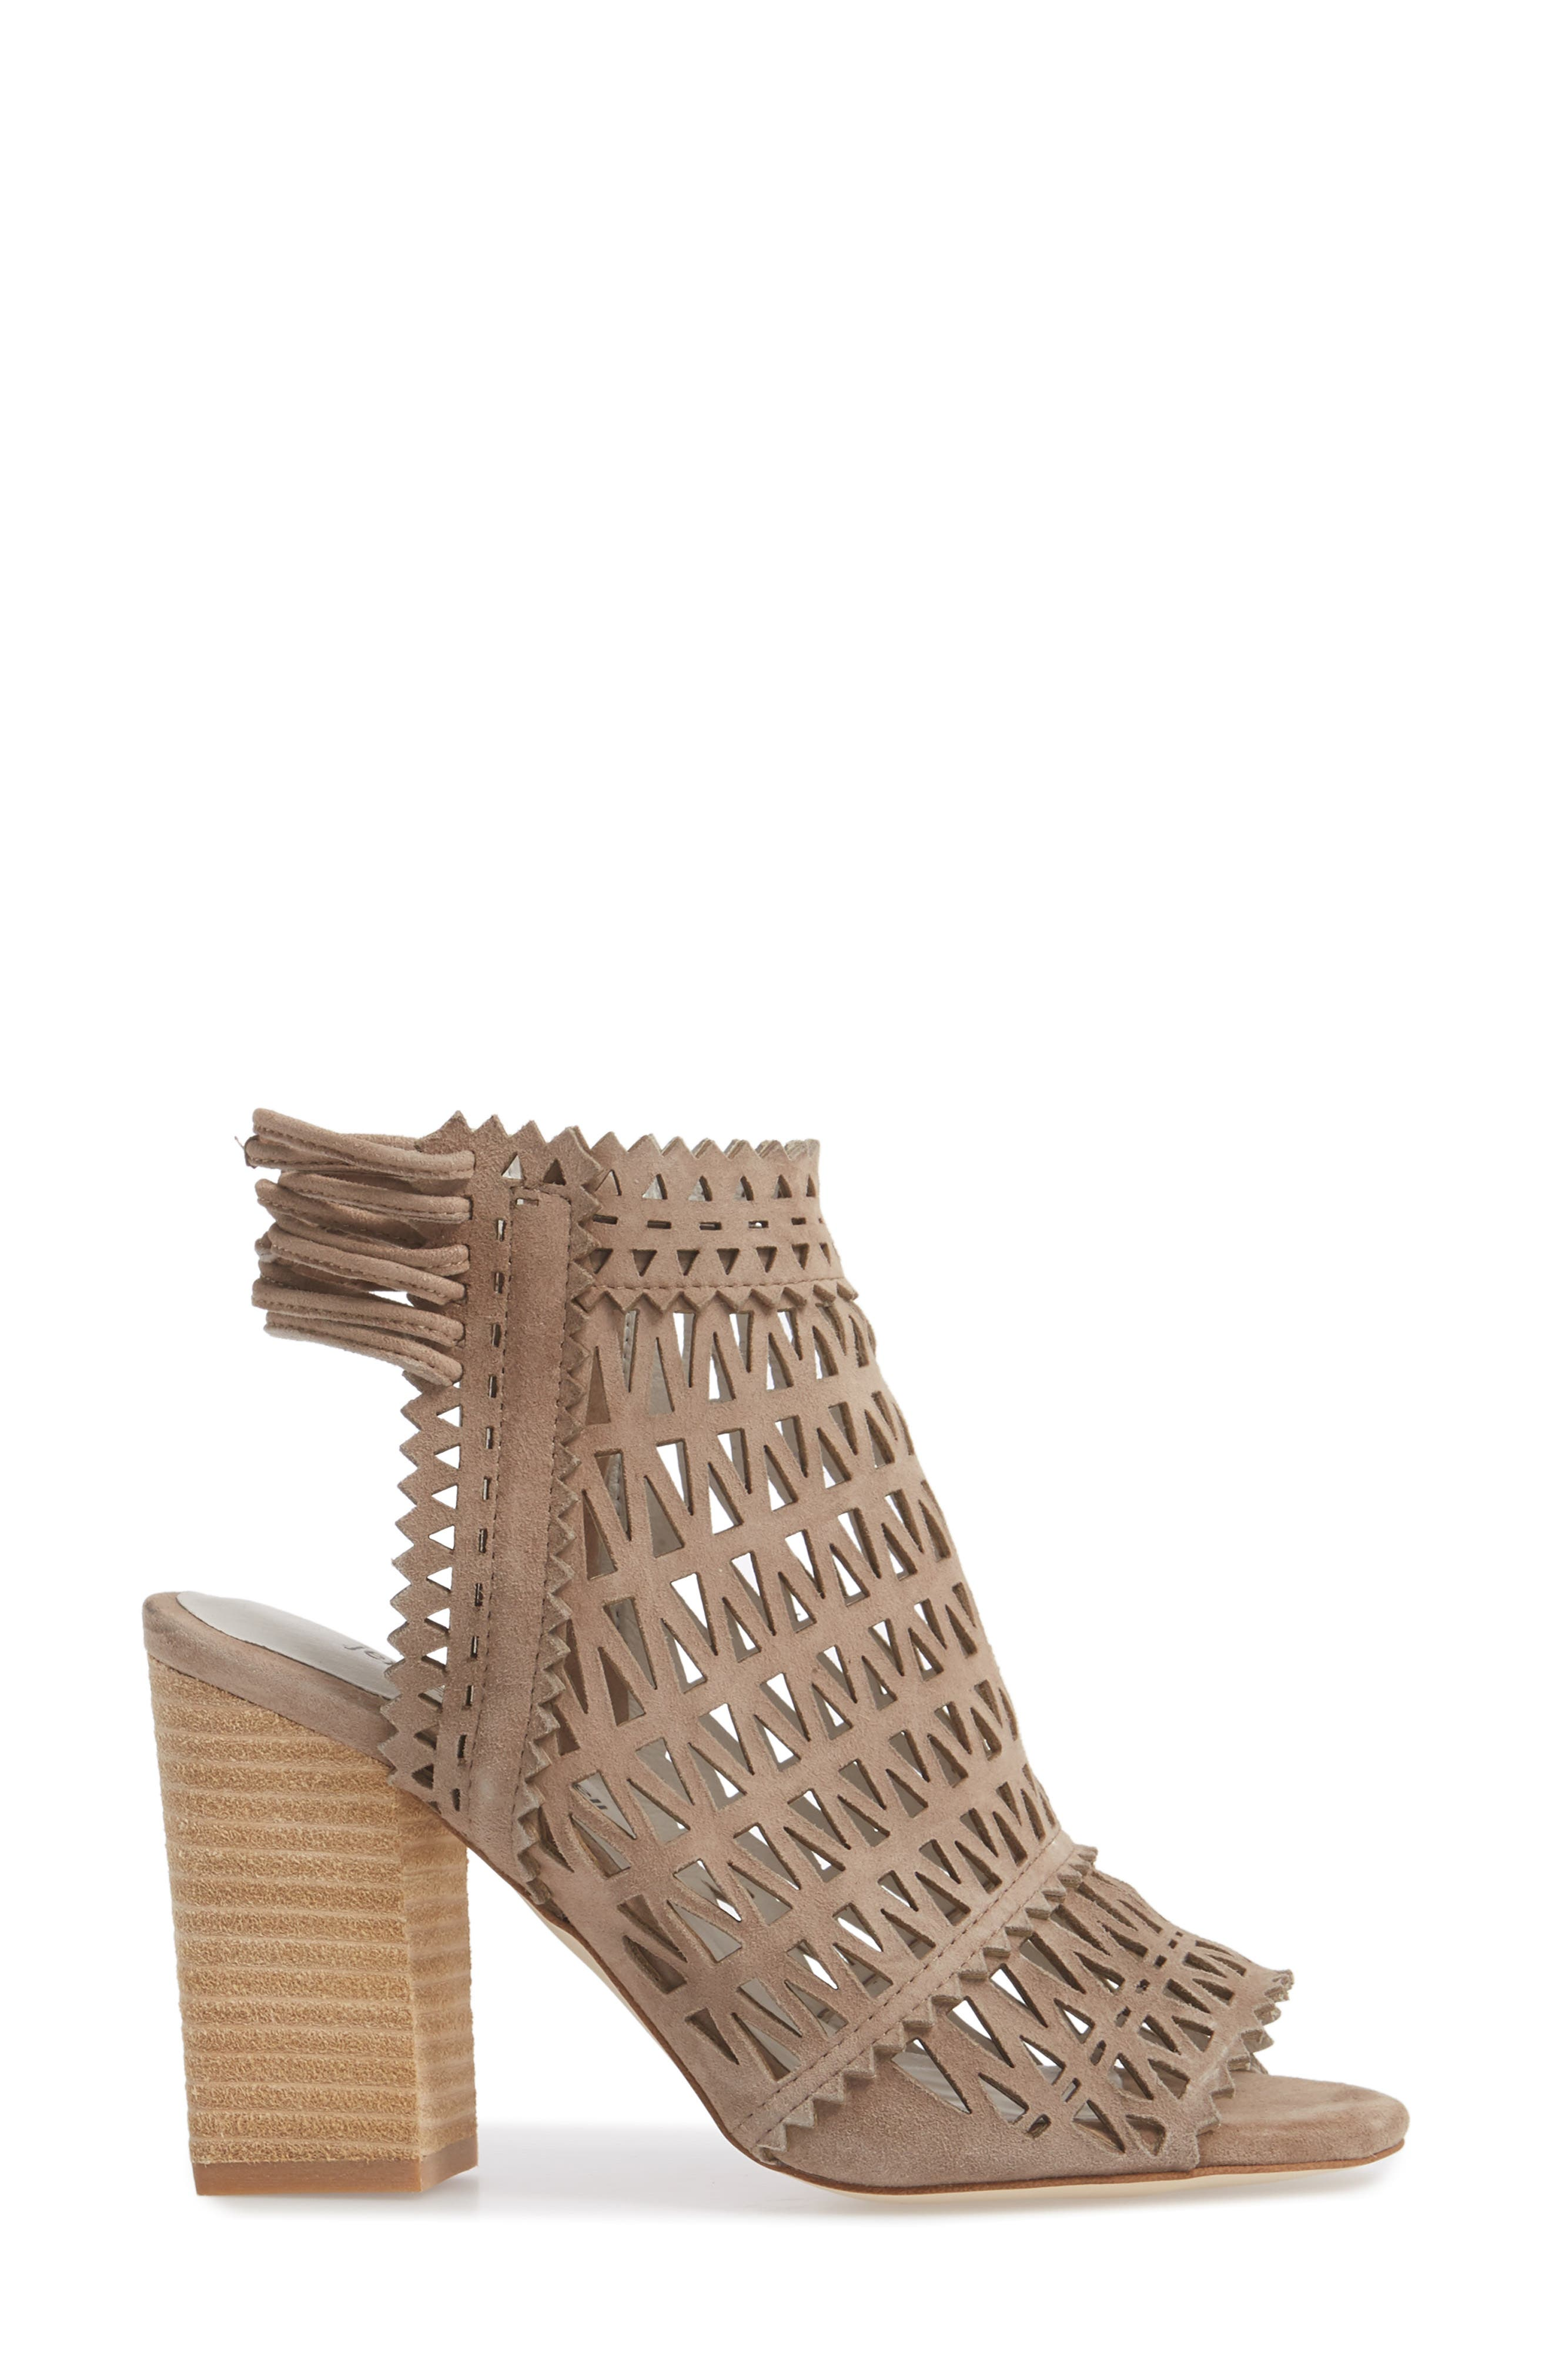 Ottawa Sandal,                             Alternate thumbnail 3, color,                             TAUPE SUEDE